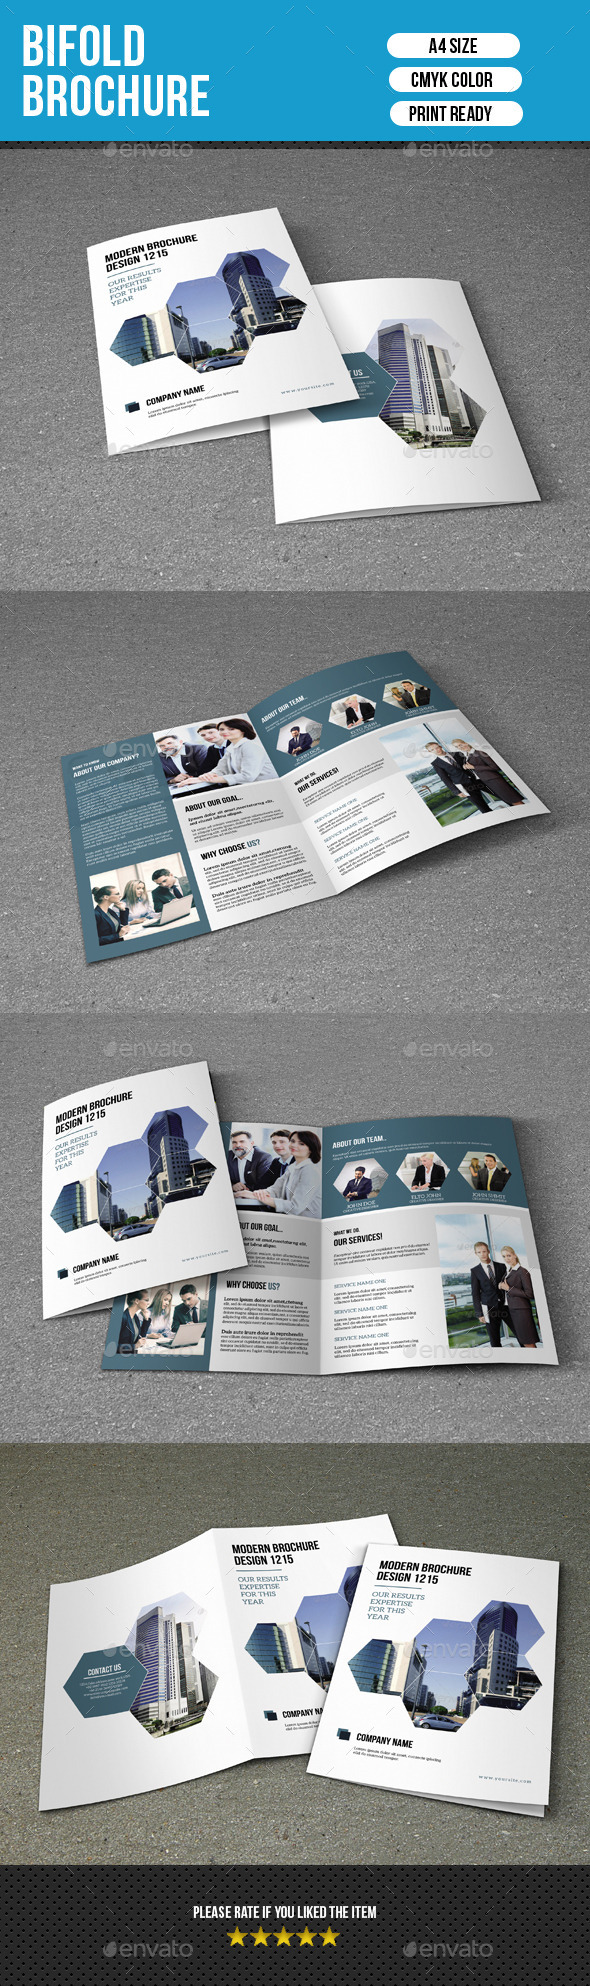 GraphicRiver Bifold Brochure for Business-V161 9534159